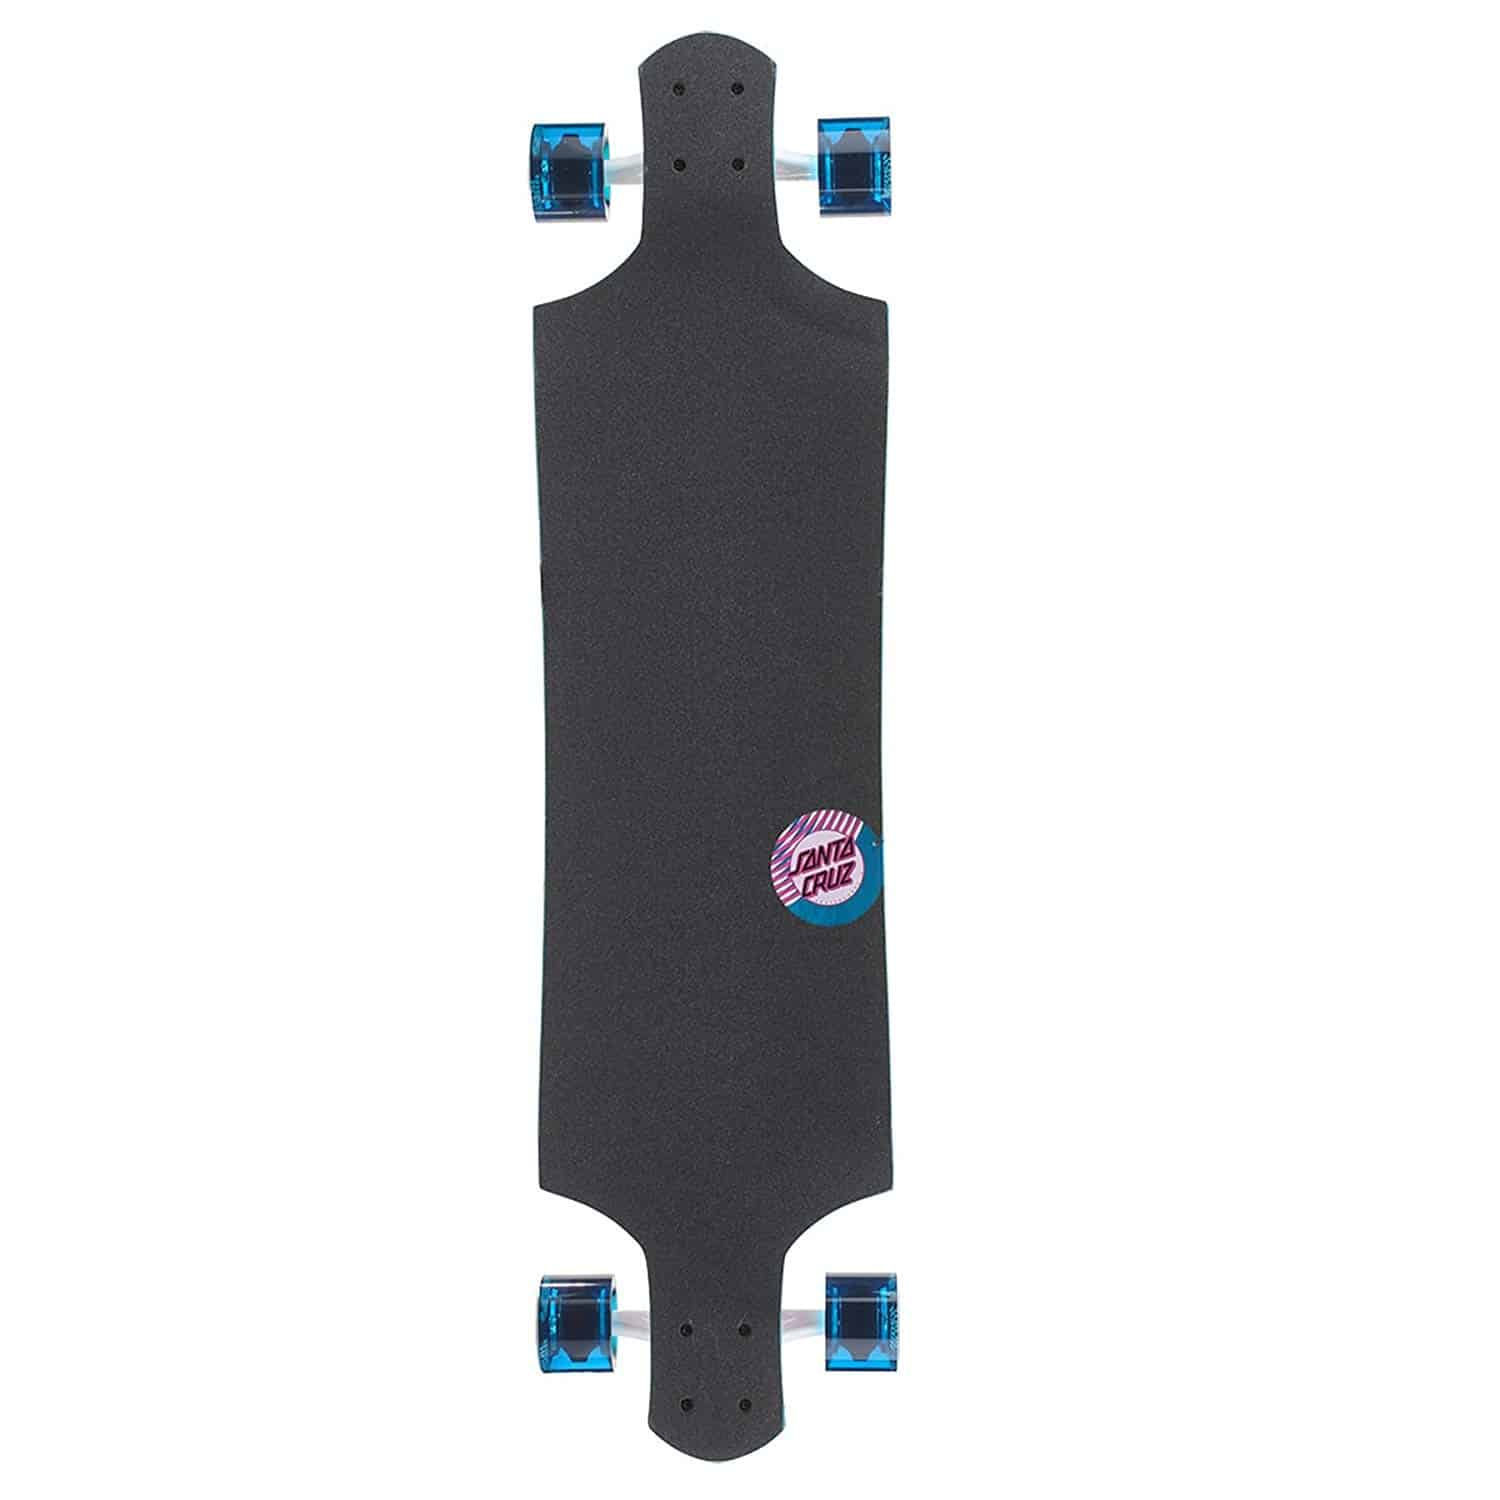 Santa Cruz Longboards with blue wheels